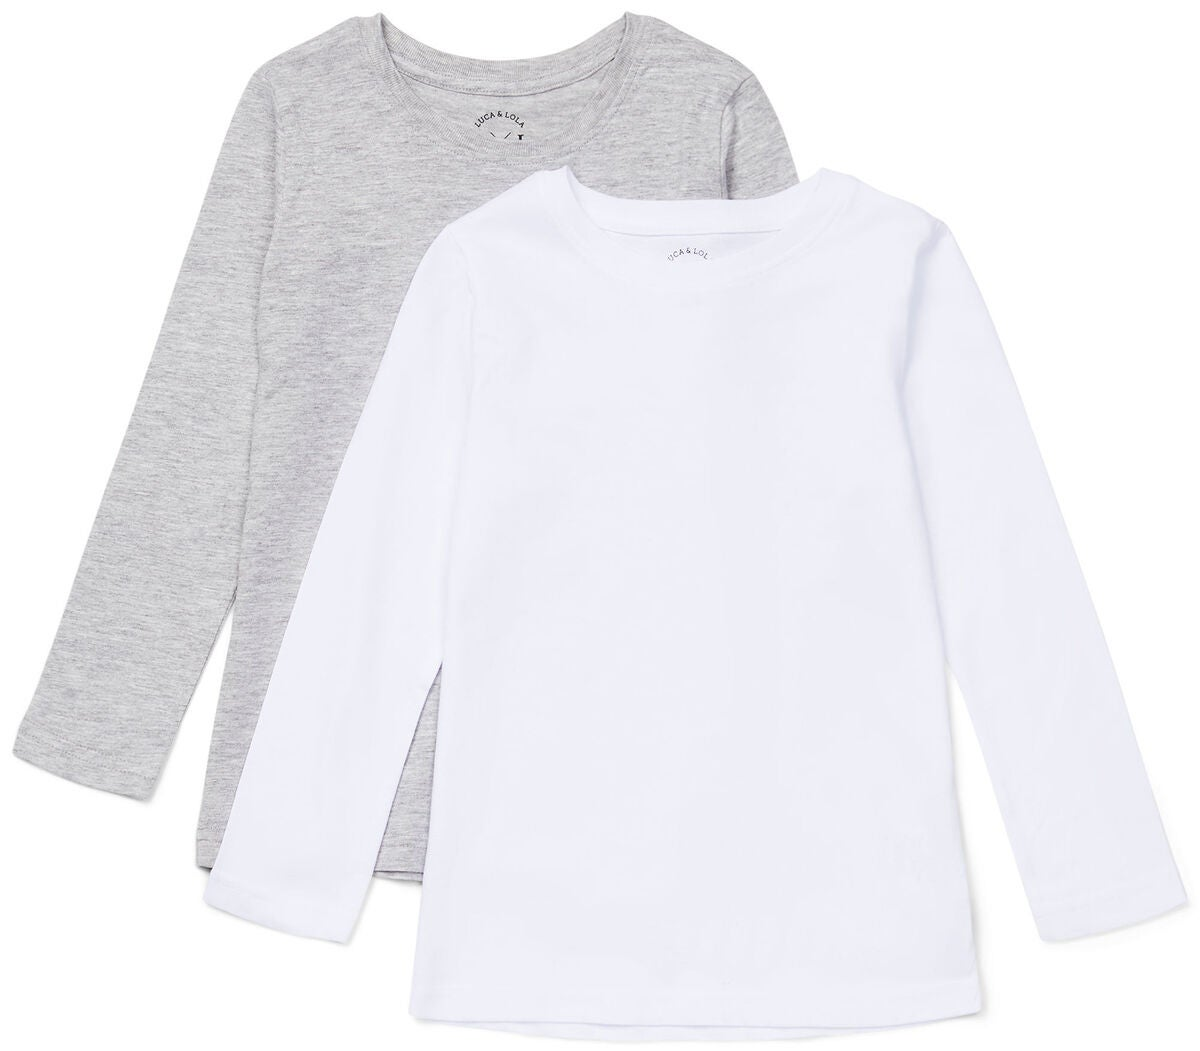 Luca & Lola Nario Langärmliges T-Shirt 2er-Pack, White/Grey